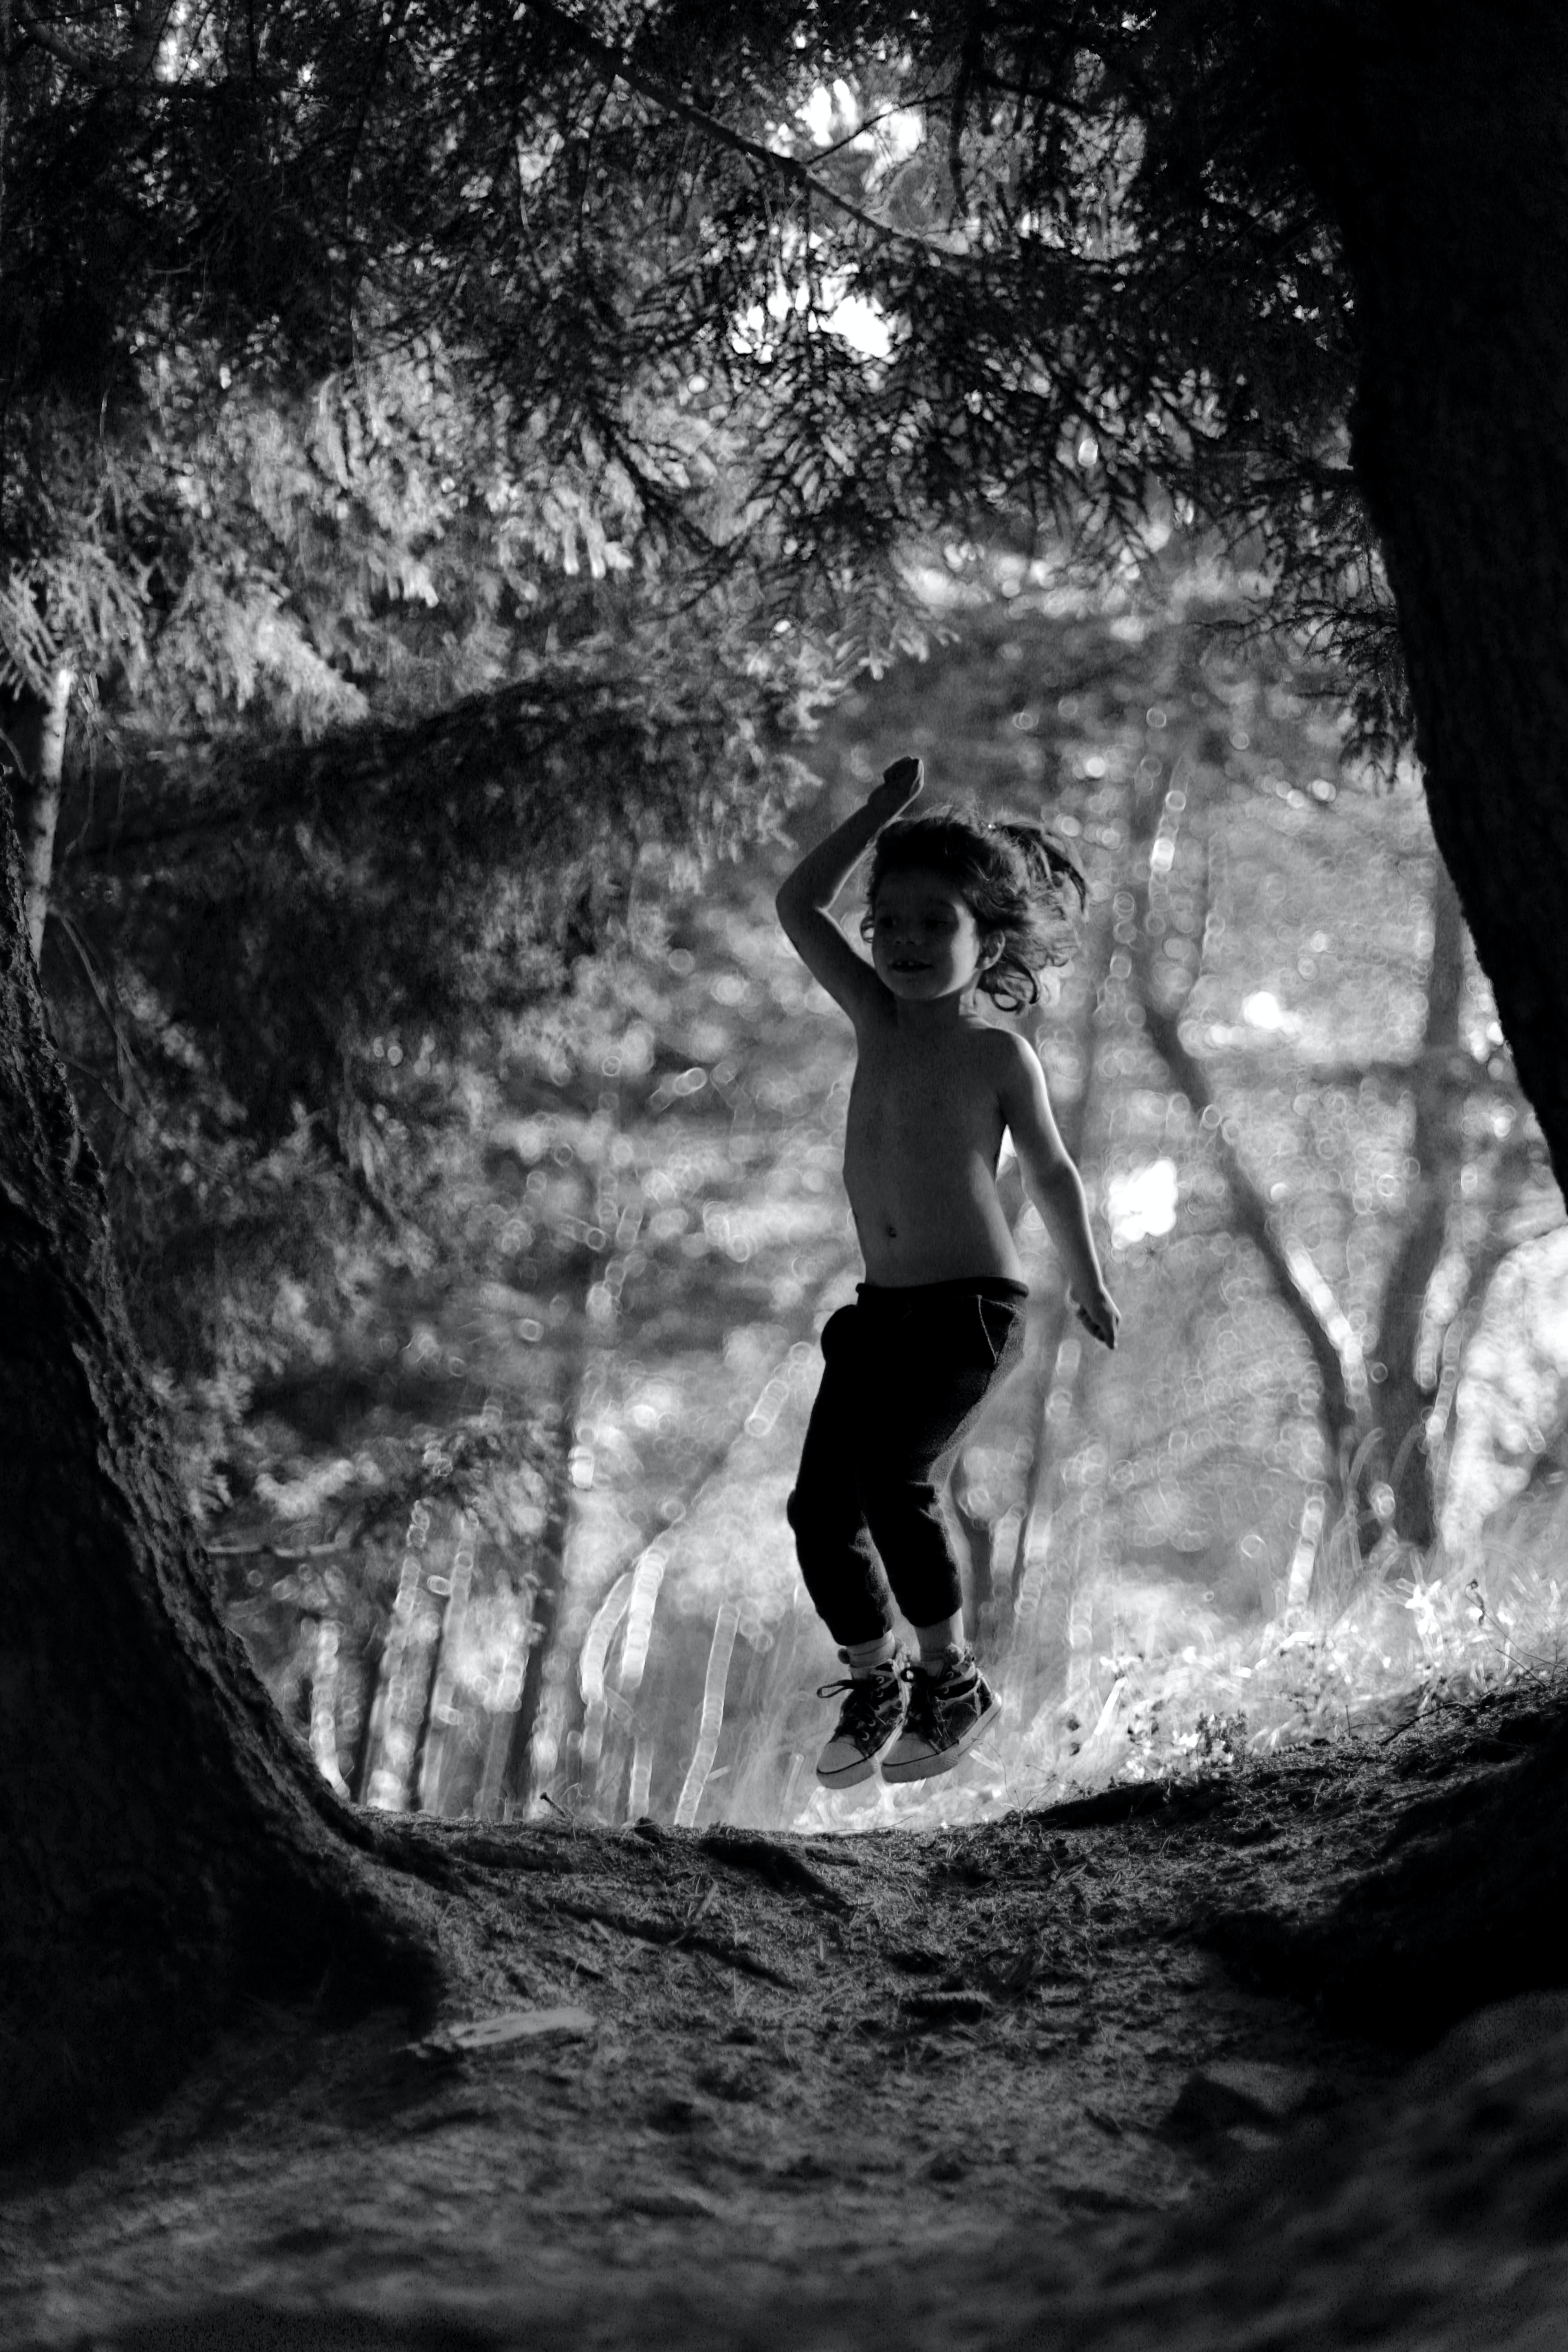 greyscale photo of child jumping near trees